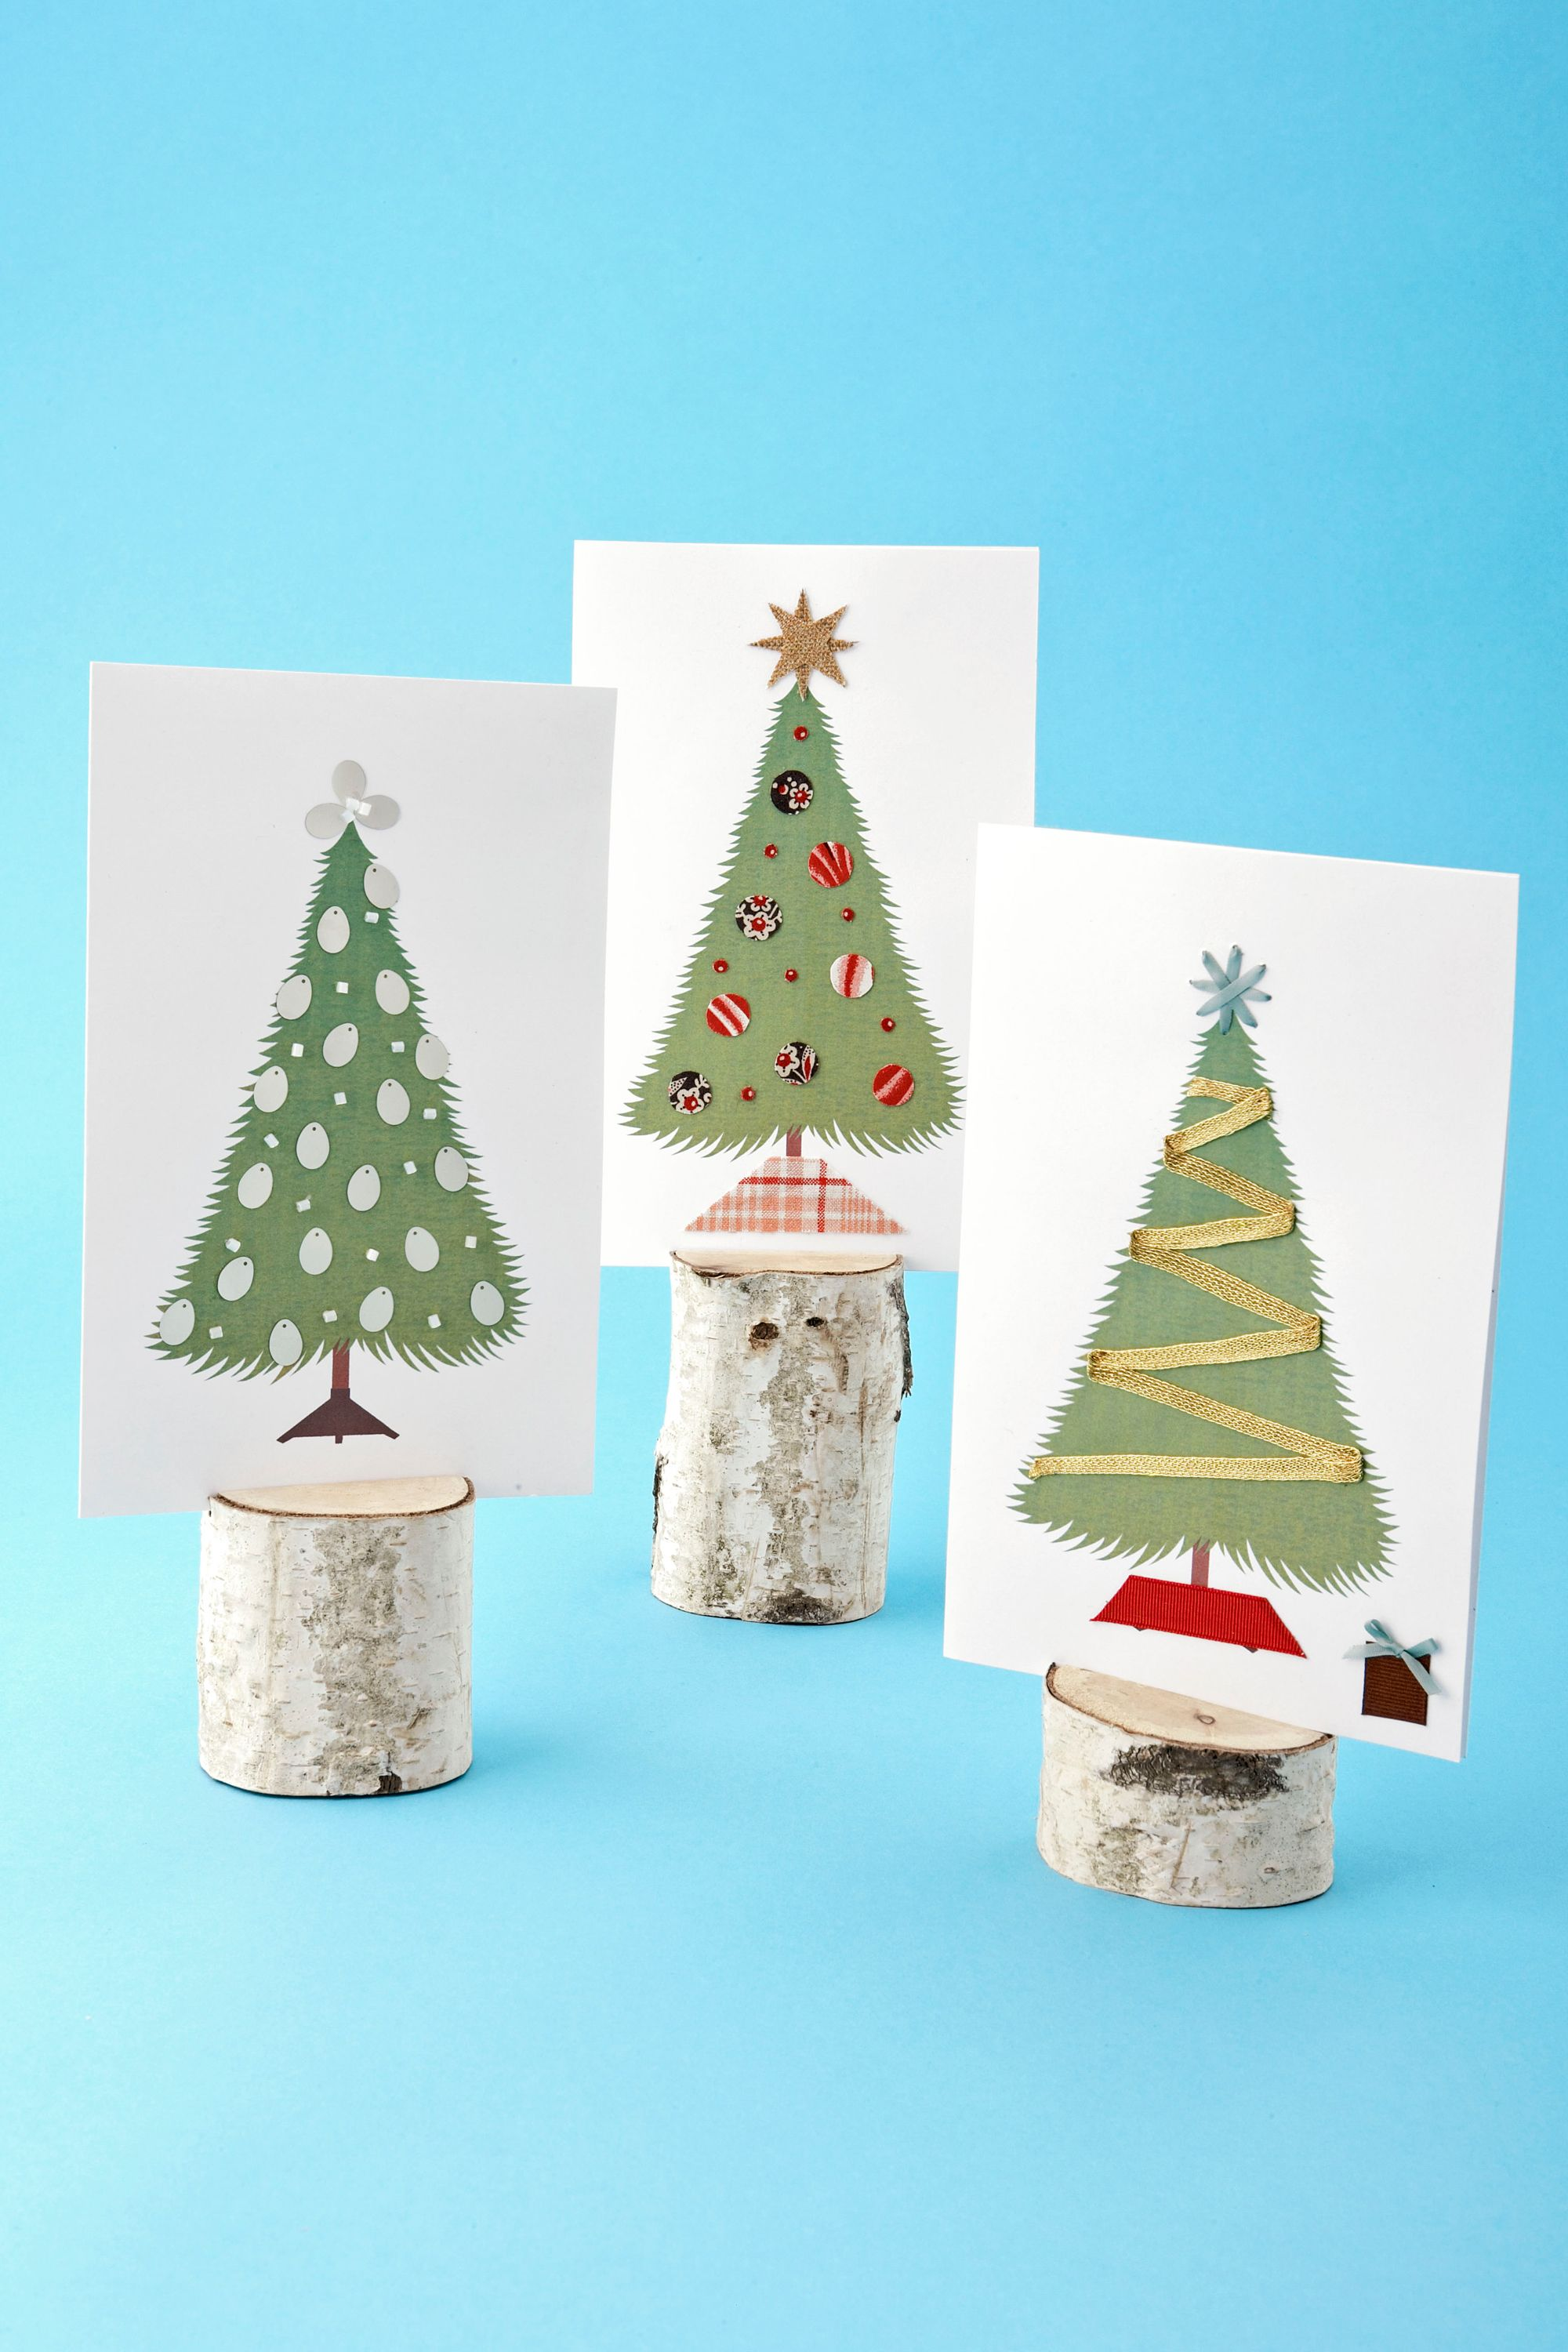 Christmas Crafts Ideas For Adults Part - 27: 30 Easy Christmas Crafts For Adults To Make - DIY Ideas For Holiday Craft  Projects